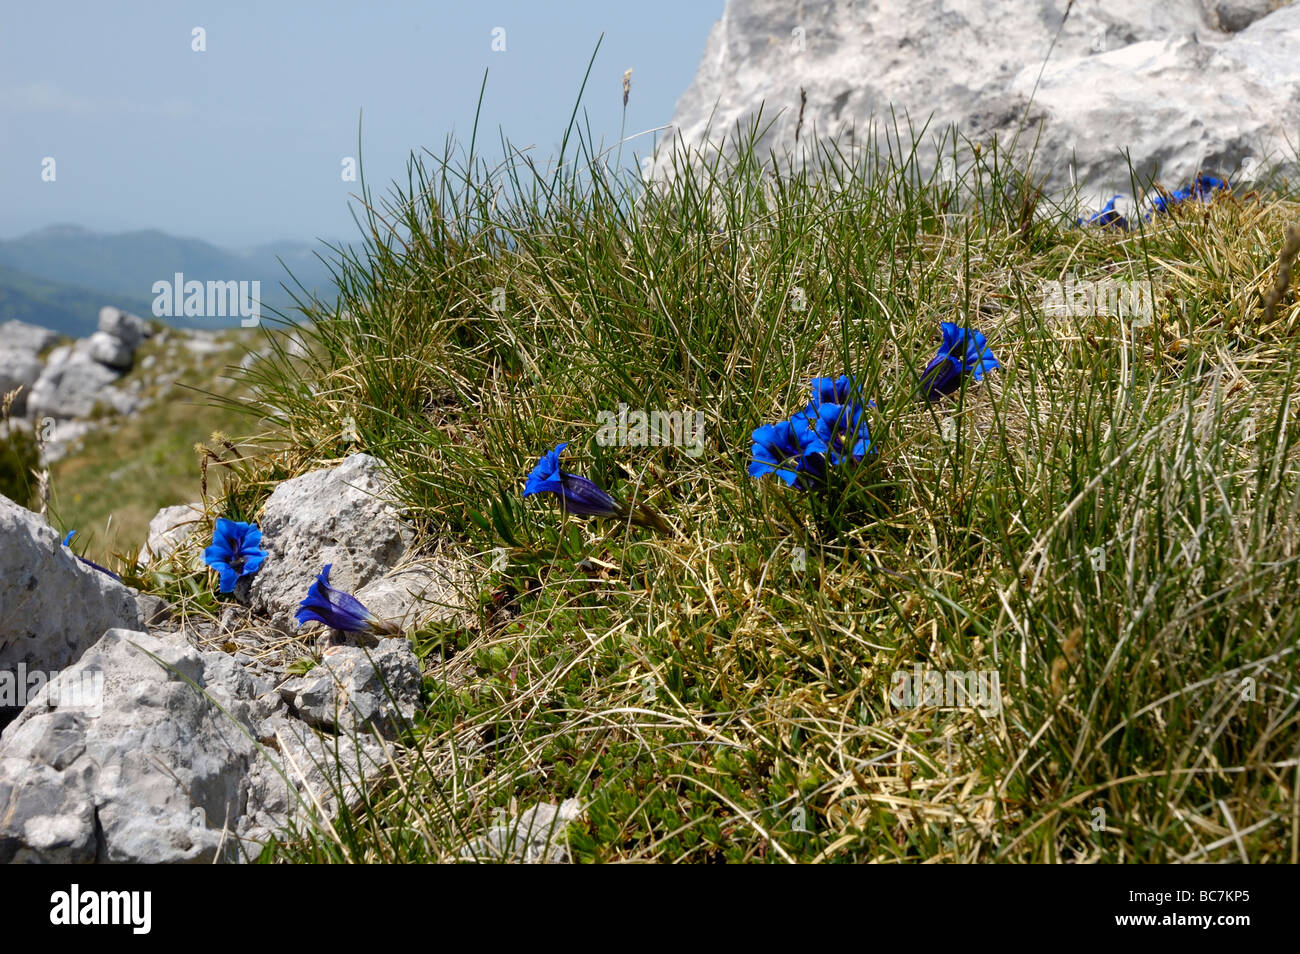 Gentians on mountainside - Stock Image